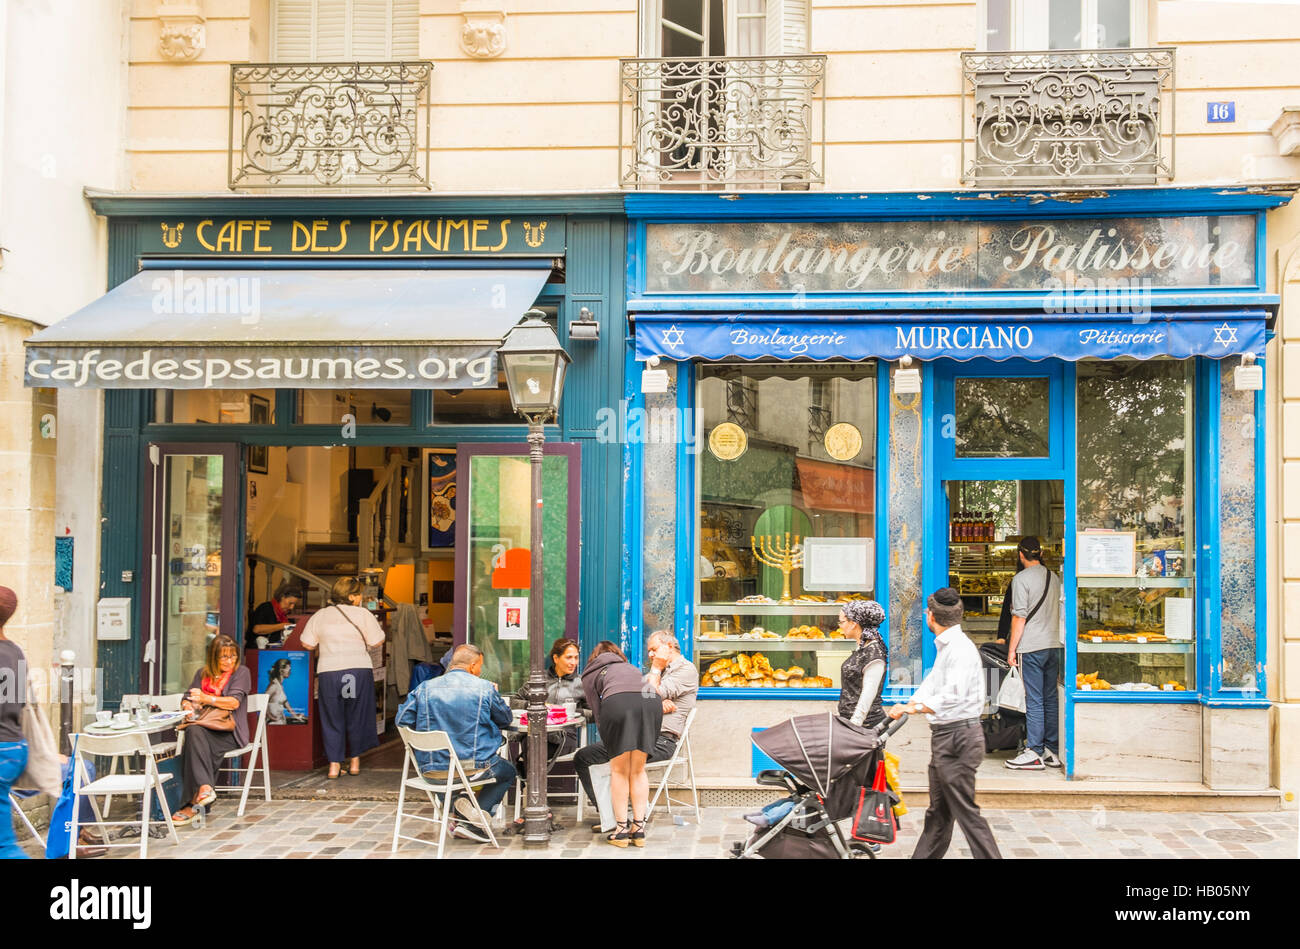 street scene in front of cafe des psaumes and  boulangerie, patisserie murciano in the jewish part of marais quarter - Stock Image